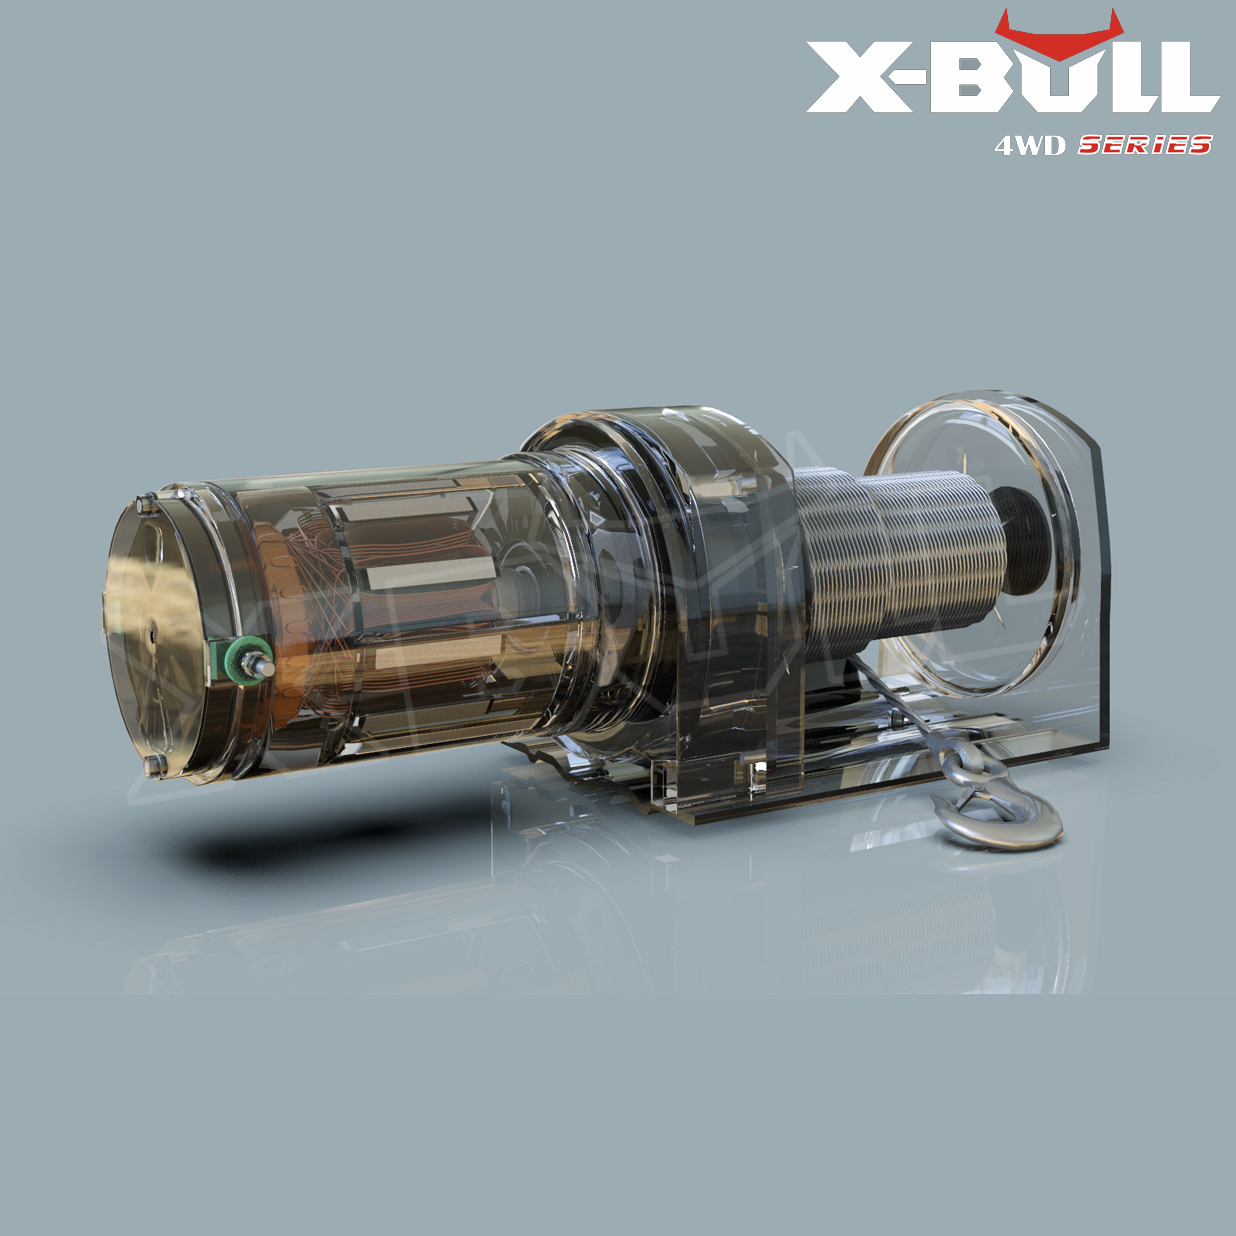 X-BULL 3000LBS /1361KGS Electric Winch Synthetic Rope 12V 10M Wireless ATV 4WD 3